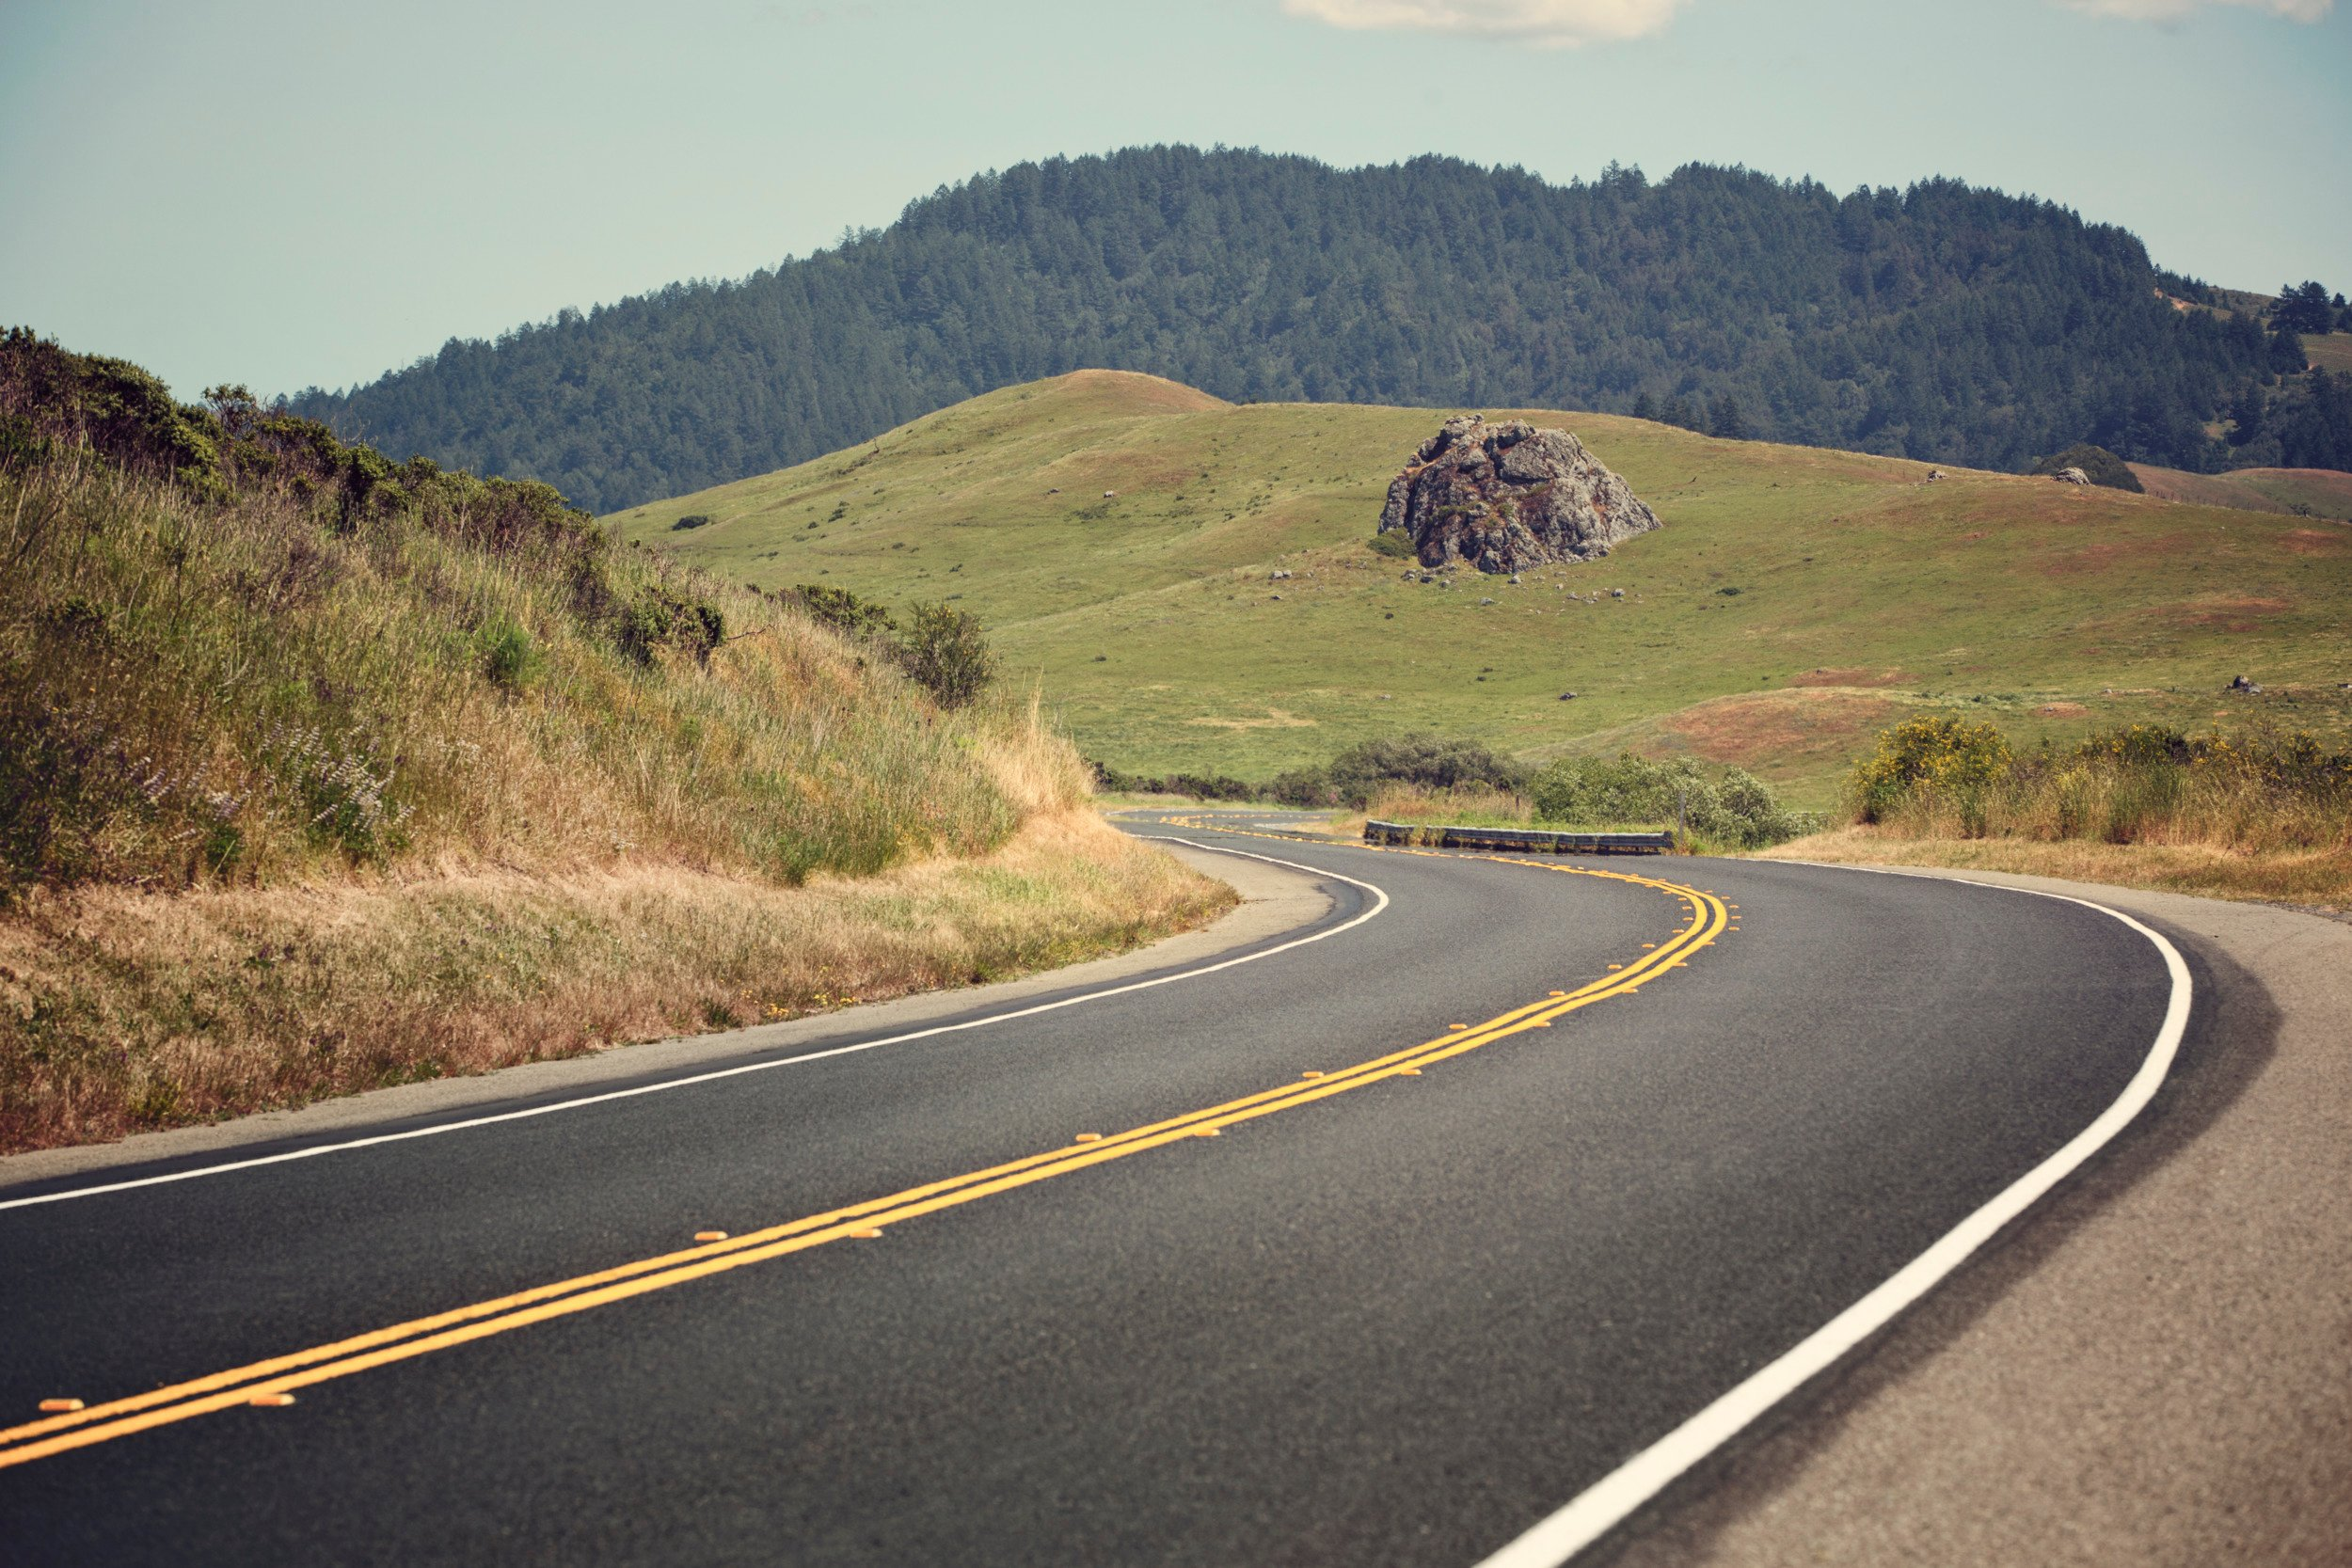 Dometic, road, truck, curve, nature, hill, drive